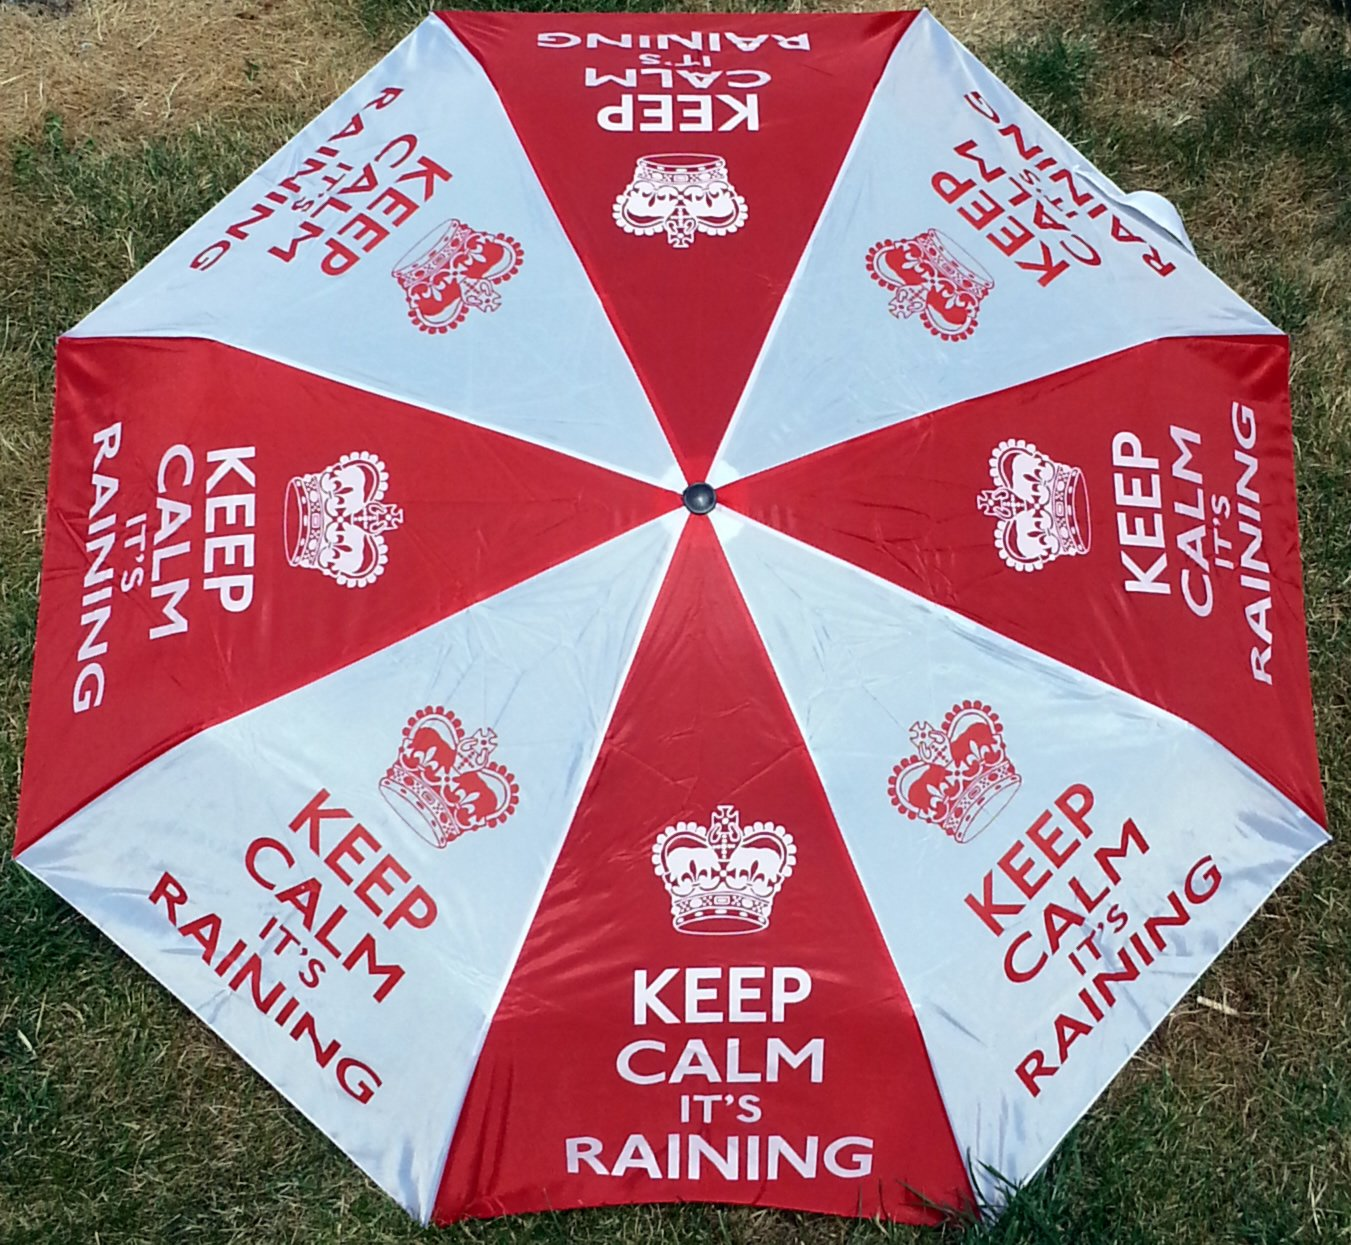 you need not panic Keep Calm its Raining Compact folding umbrella Fits easily in a bag or glove compartment so when it starts to rain